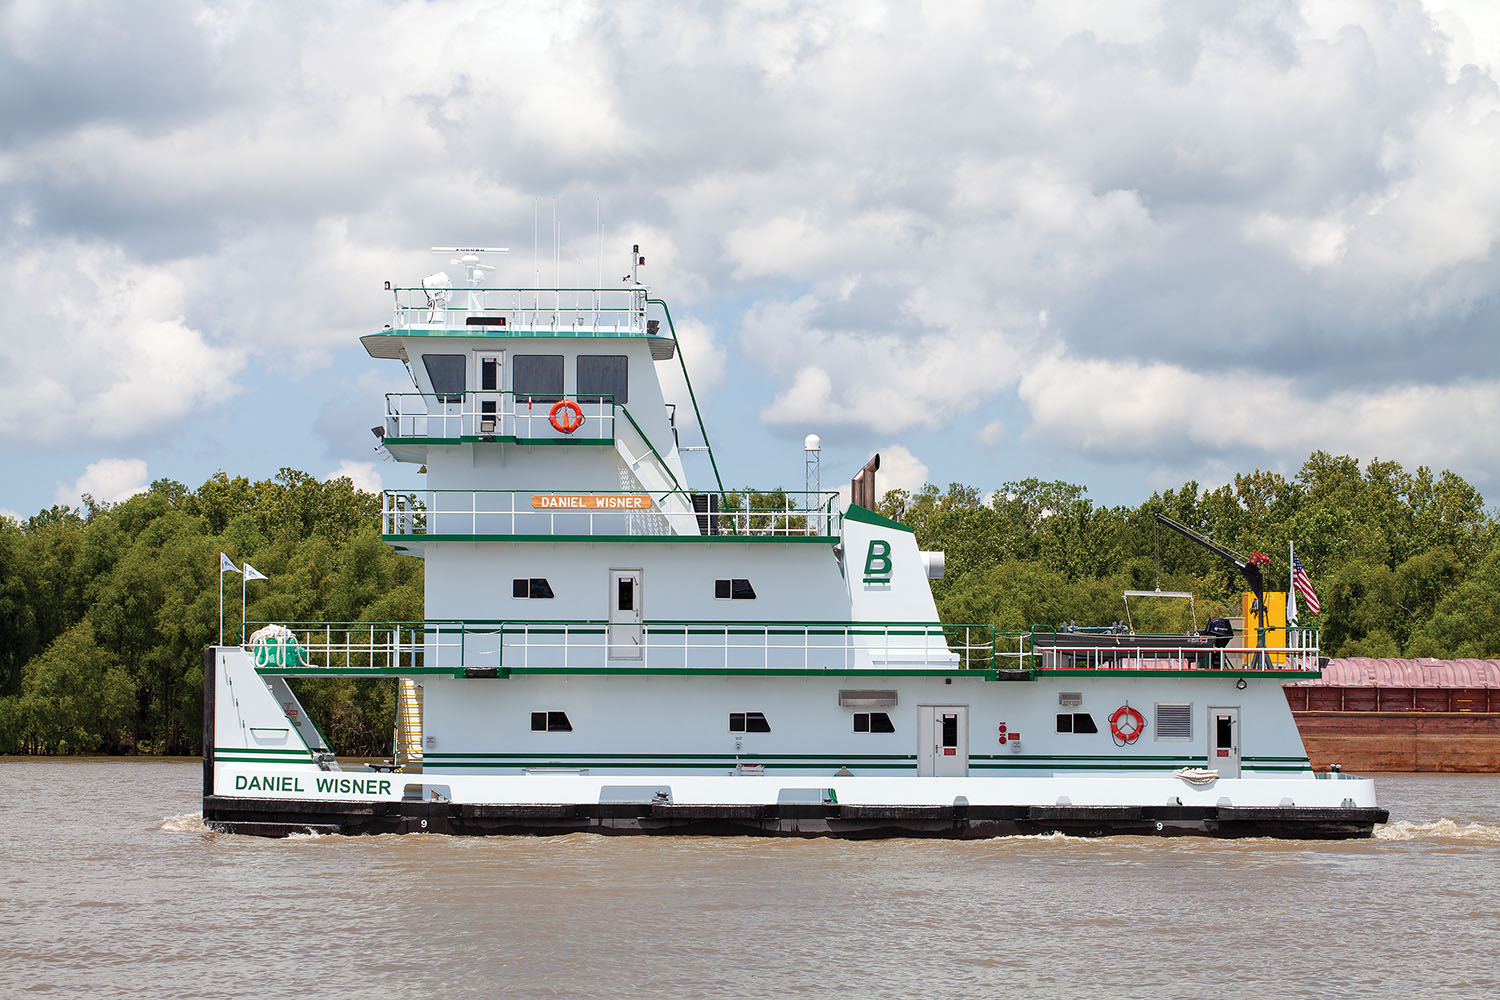 Blessey Christens Latest Towboat From Verret Shipyard